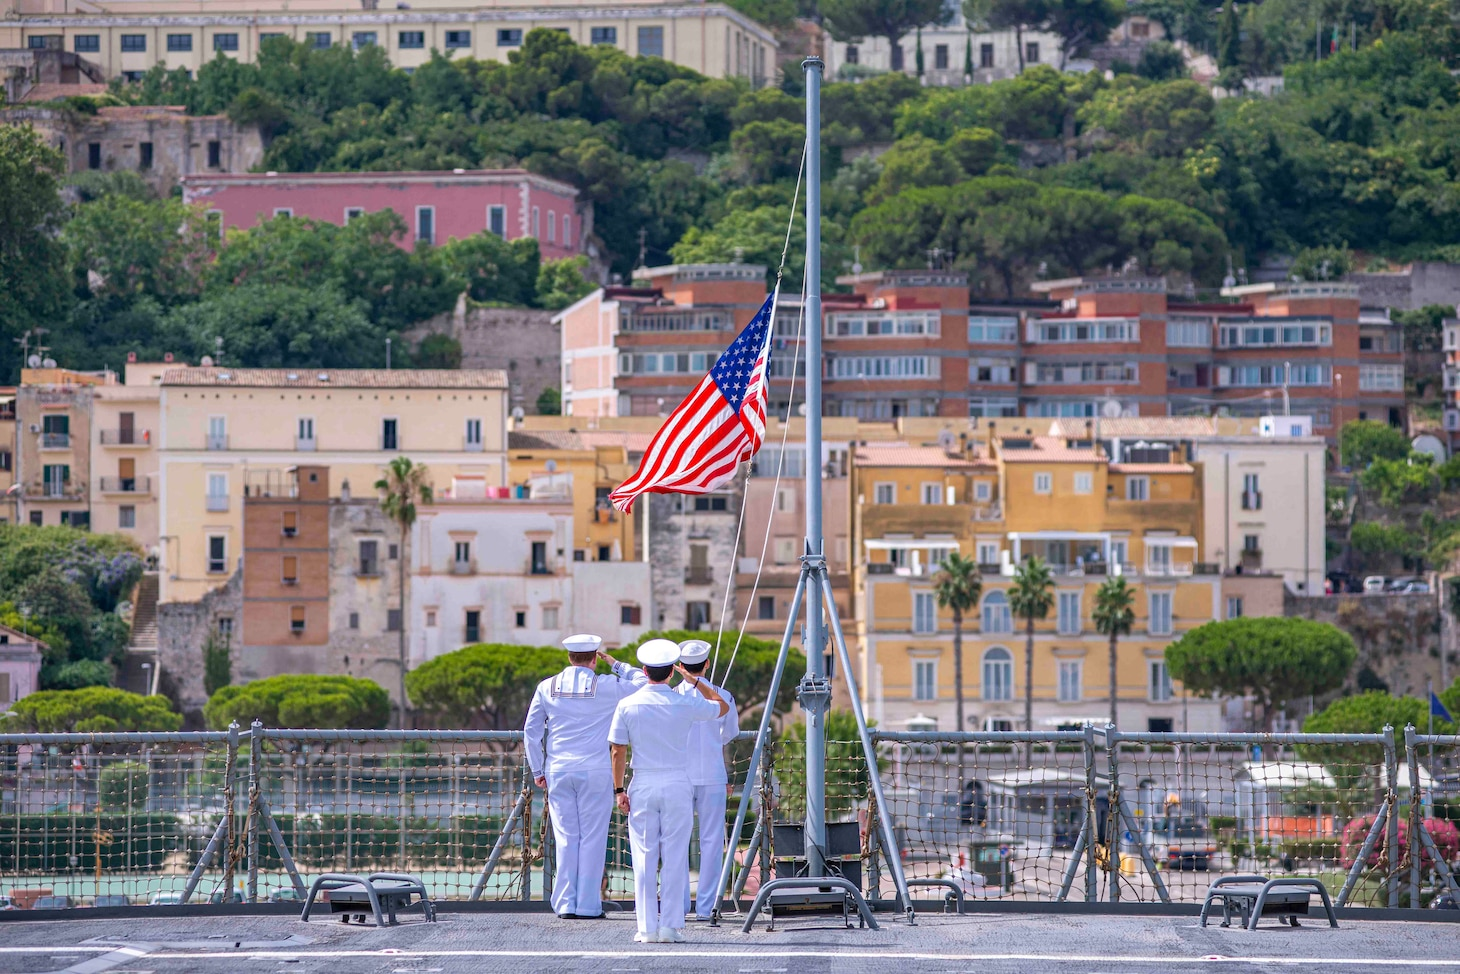 Sailors shift colors aboard the Blue Ridge-class command and control ship USS Mount Whitney (LCC 20) as the ship and embarked U.S. Sixth Fleet staff get underway from Gaeta, Italy, in preparation for Large Scale Exercise, July 27, 2021. Mount Whitney is the U.S. Sixth Fleet flagship, homeported in Gaeta, and operates with a combined crew of U.S. Sailors and Military Sealift Command civil service mariners.